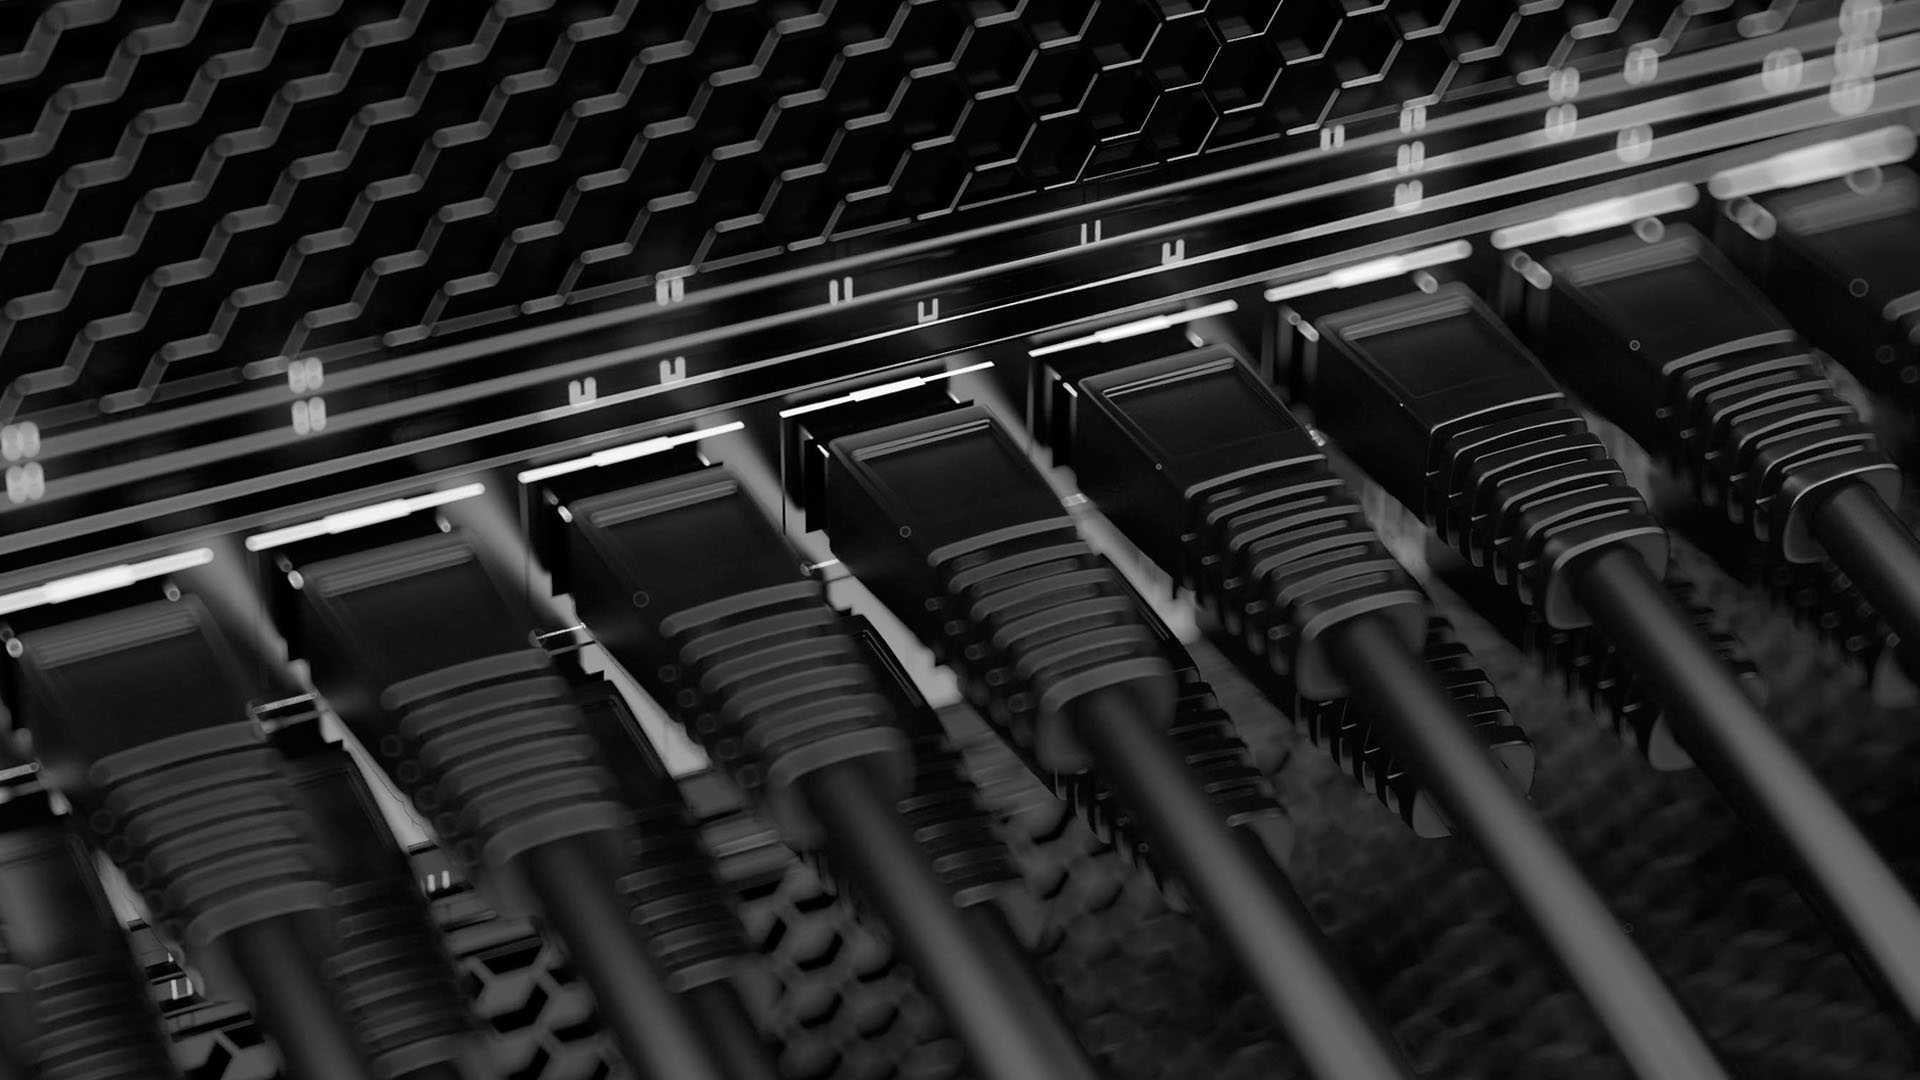 Res: 1920x1080, Monochrome, Windows Server, Tech, Steel, Firearm HD Wallpaper, Technology  Picture, Background and Image